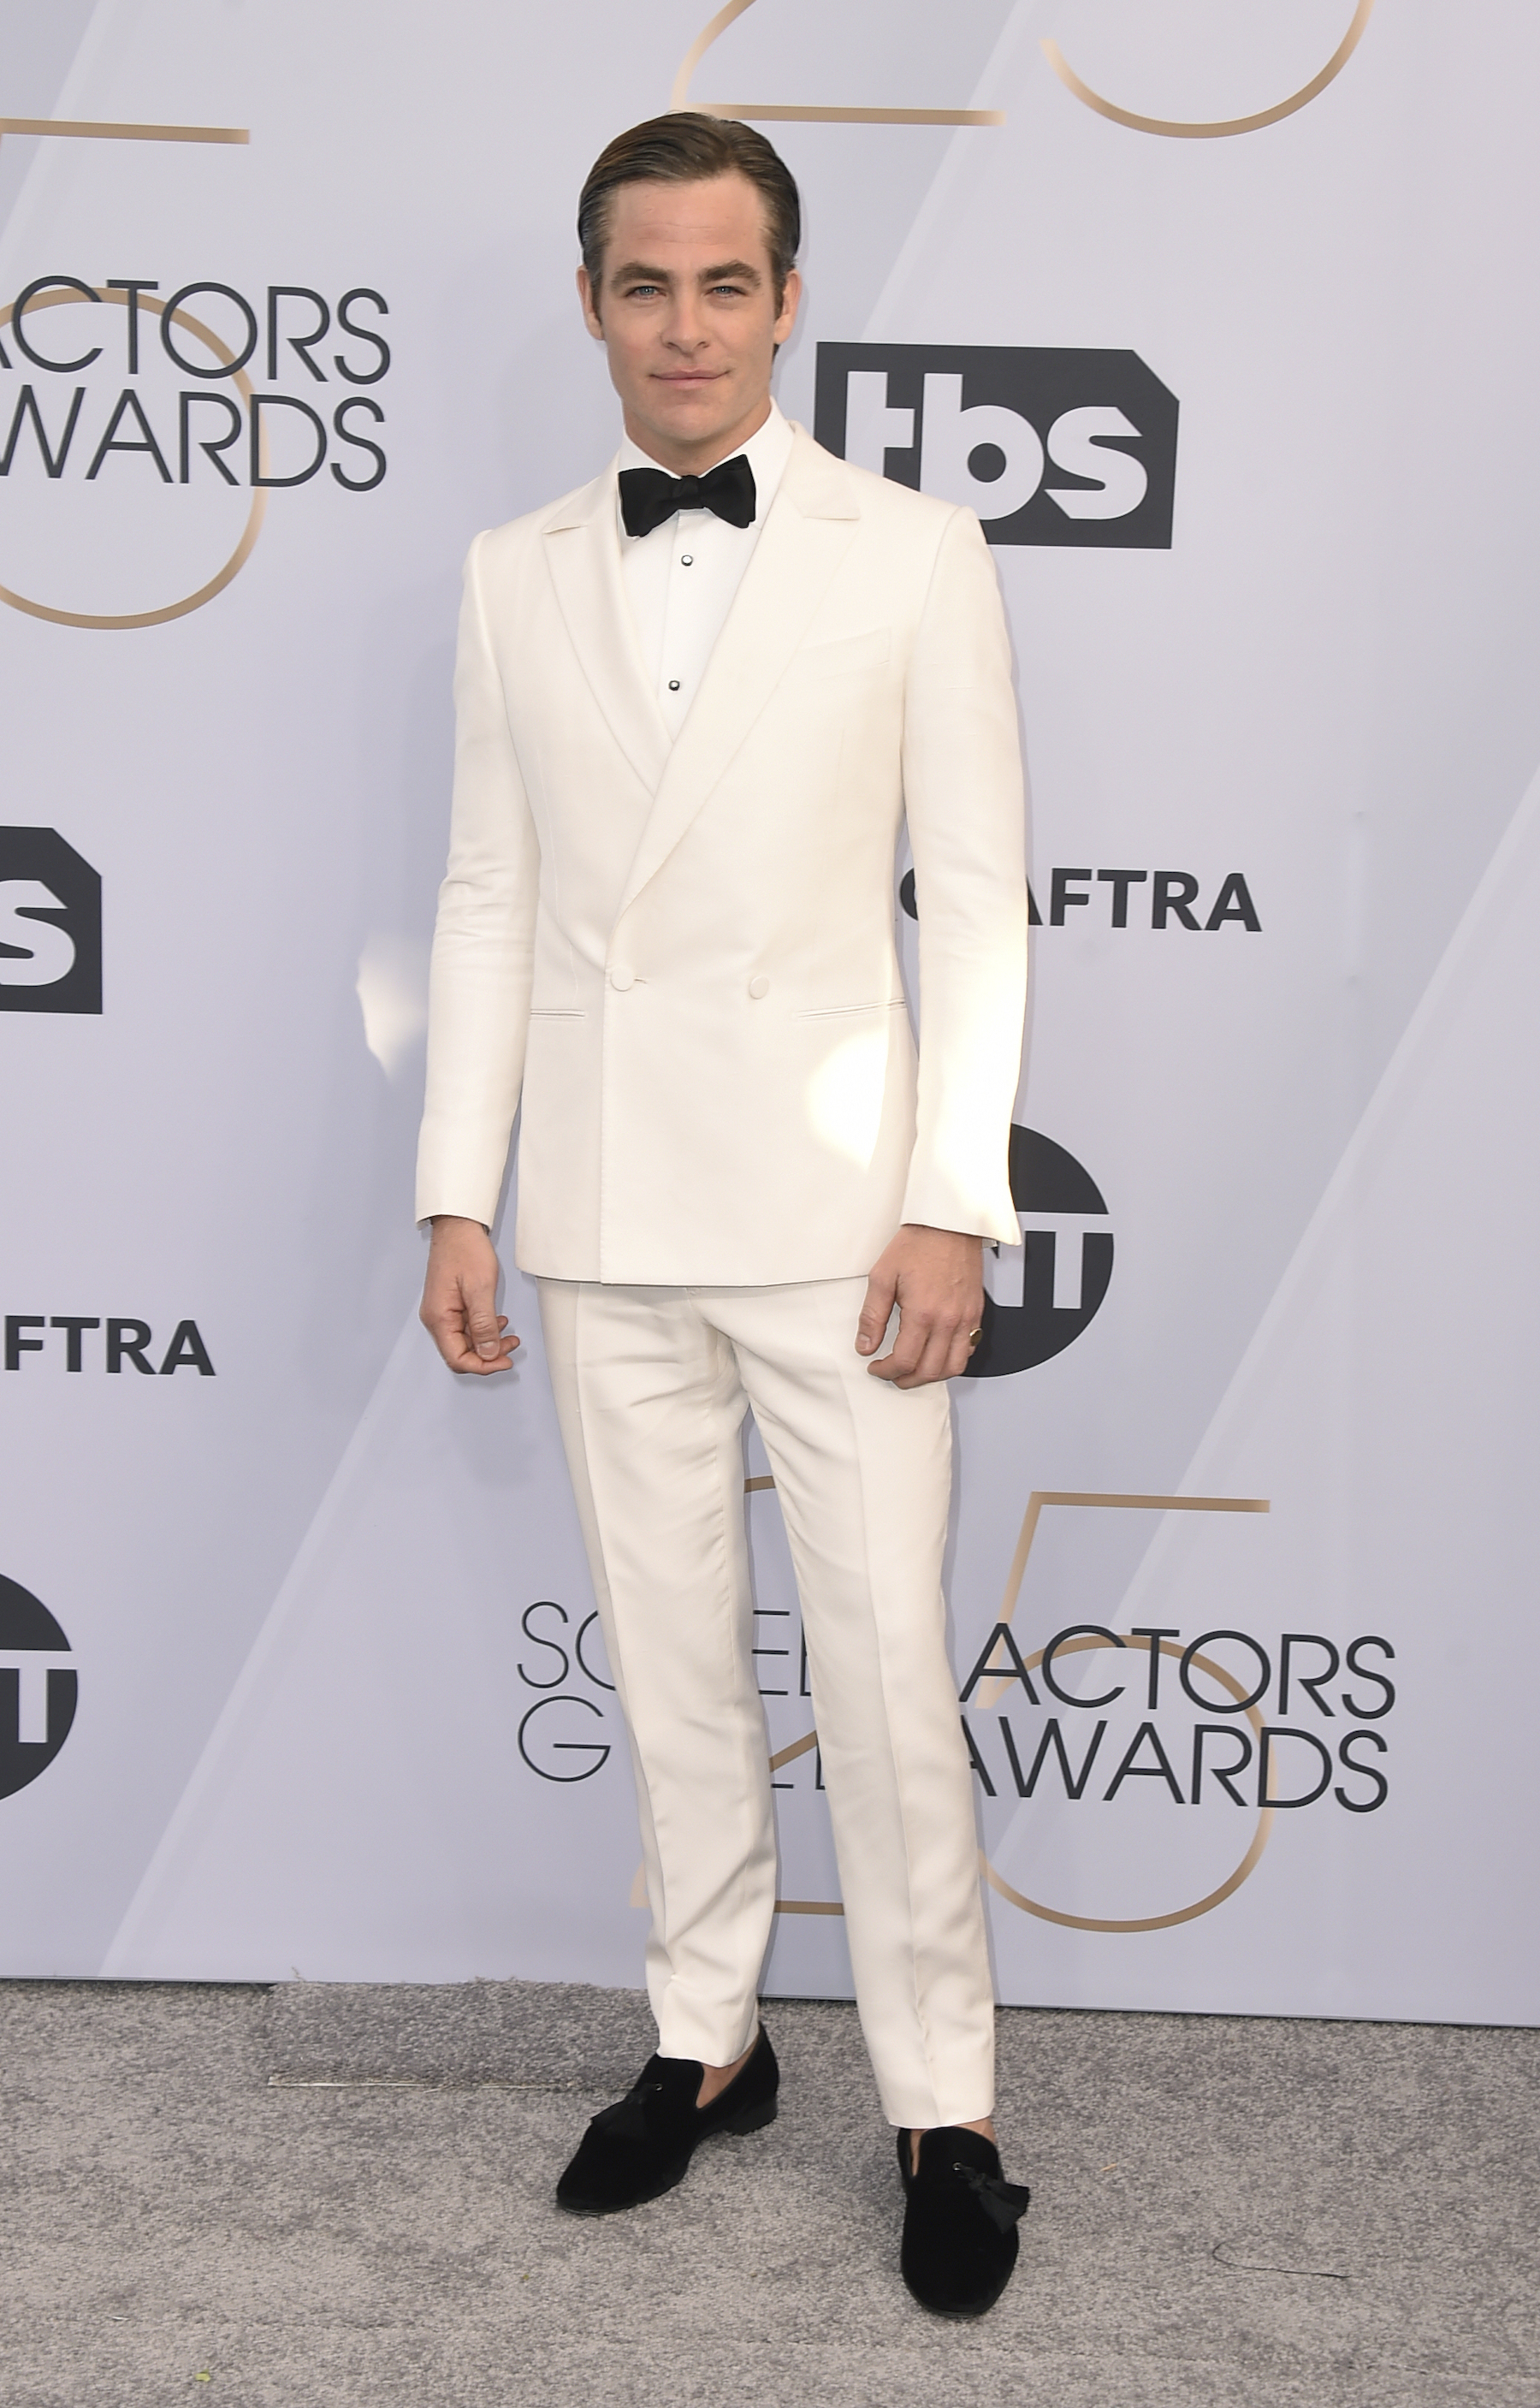 "<div class=""meta image-caption""><div class=""origin-logo origin-image ap""><span>AP</span></div><span class=""caption-text"">Chris Pine arrives at the 25th annual Screen Actors Guild Awards at the Shrine Auditorium & Expo Hall on Sunday, Jan. 27, 2019, in Los Angeles. (Jordan Strauss/Invision/AP)</span></div>"